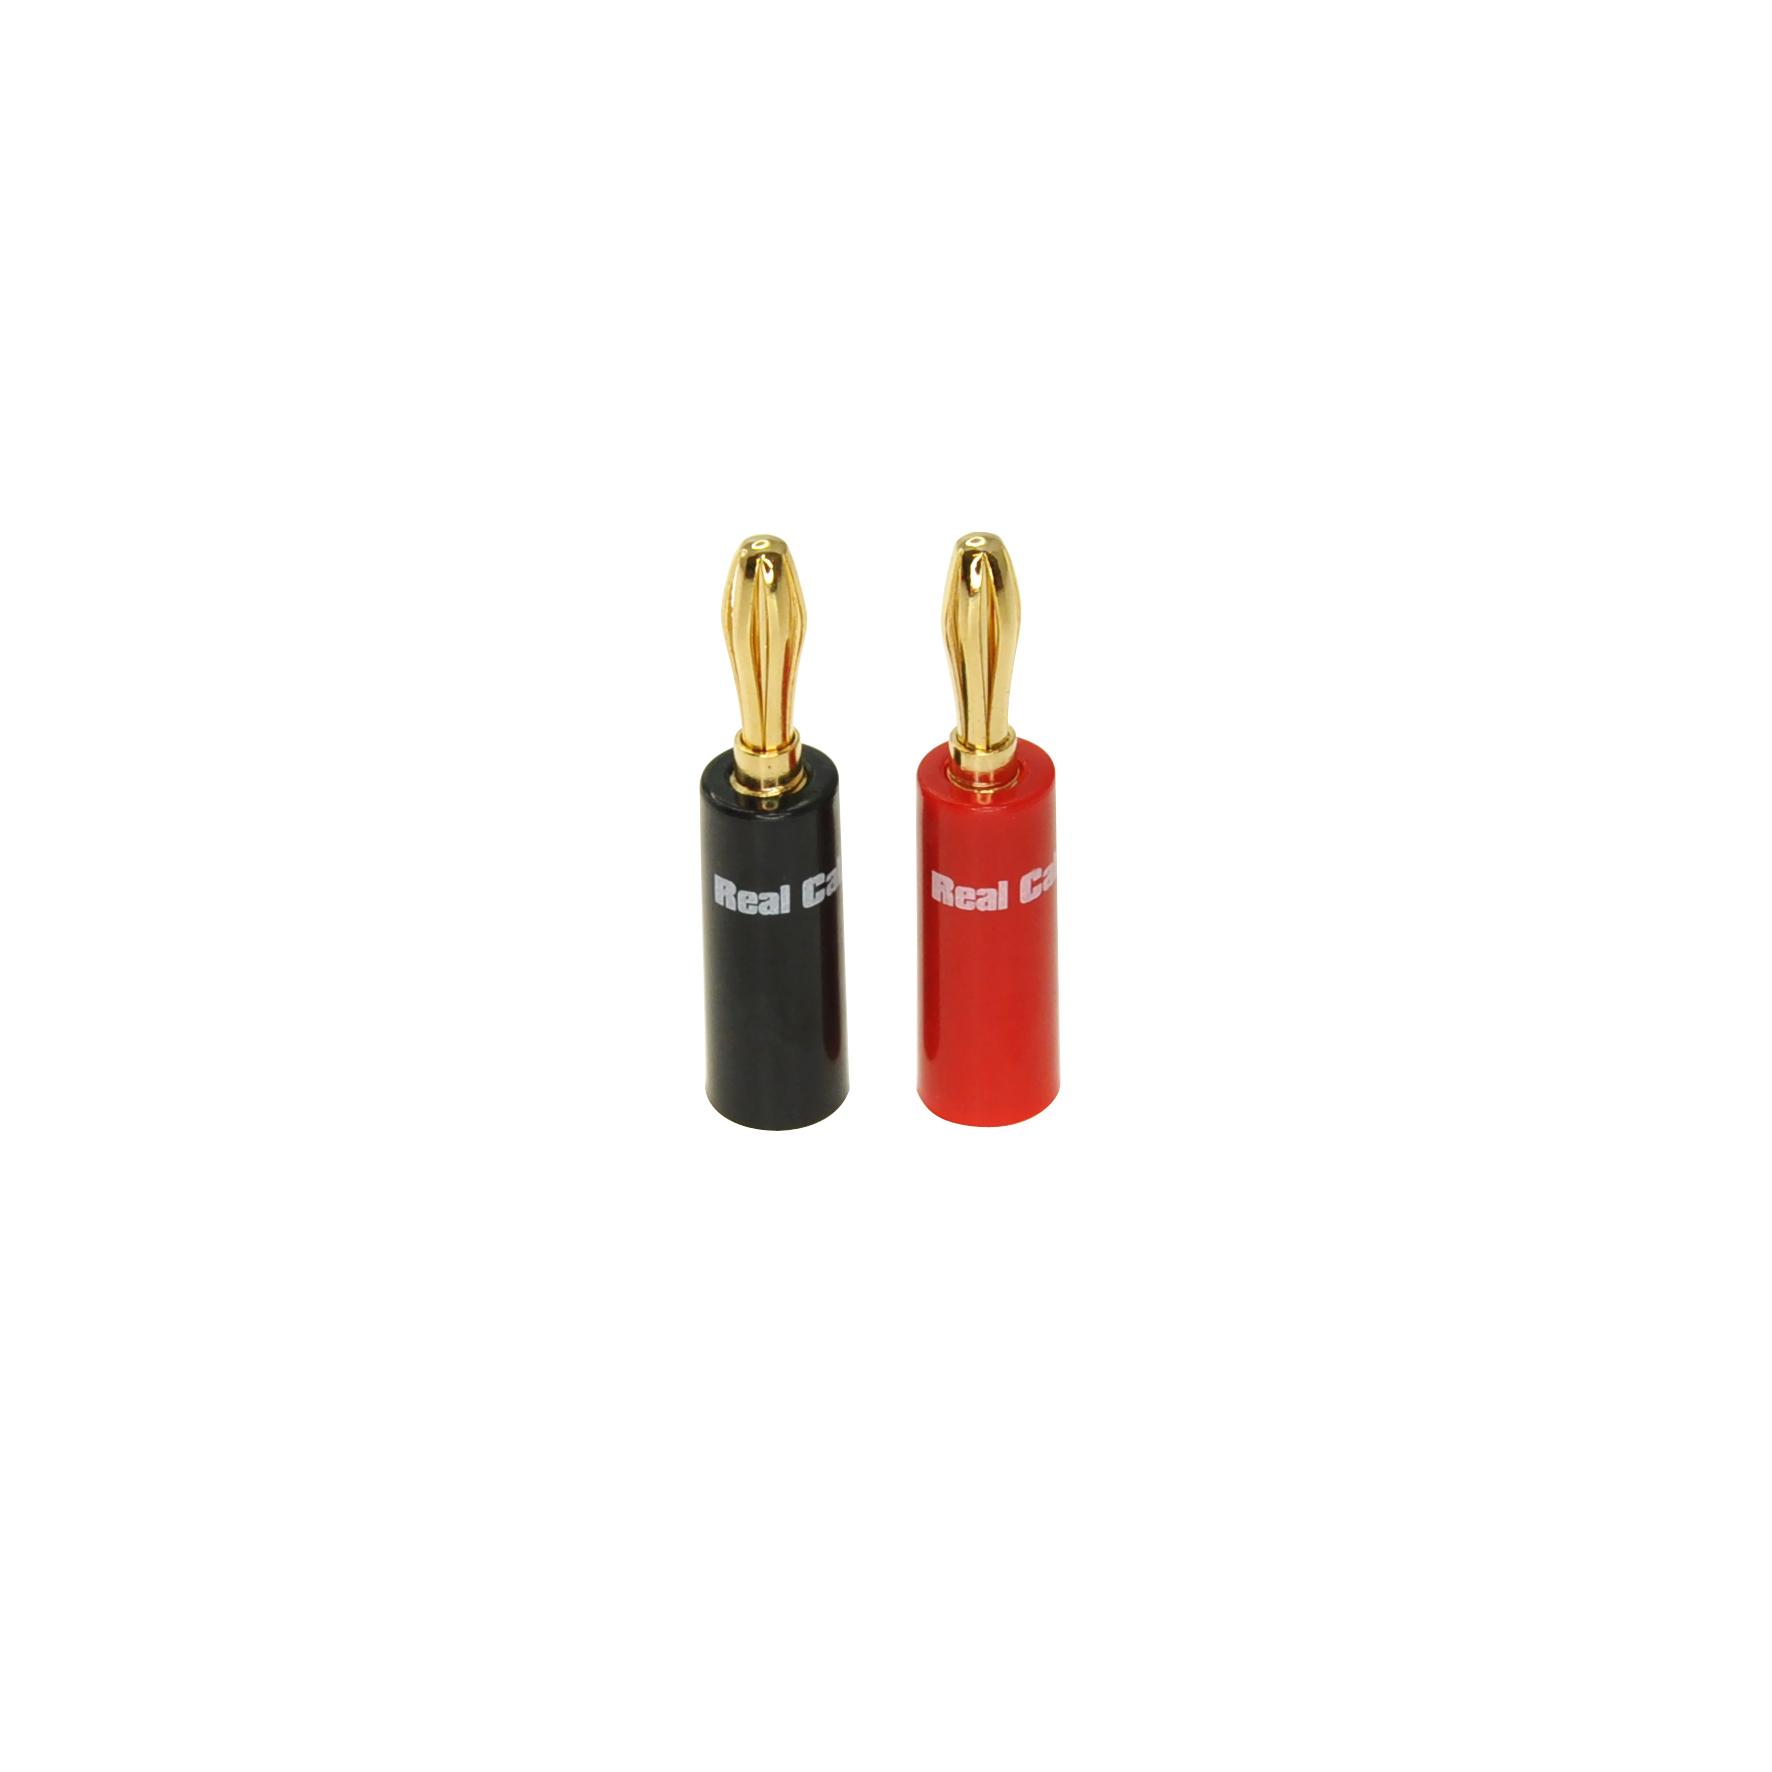 Real Cable B6020